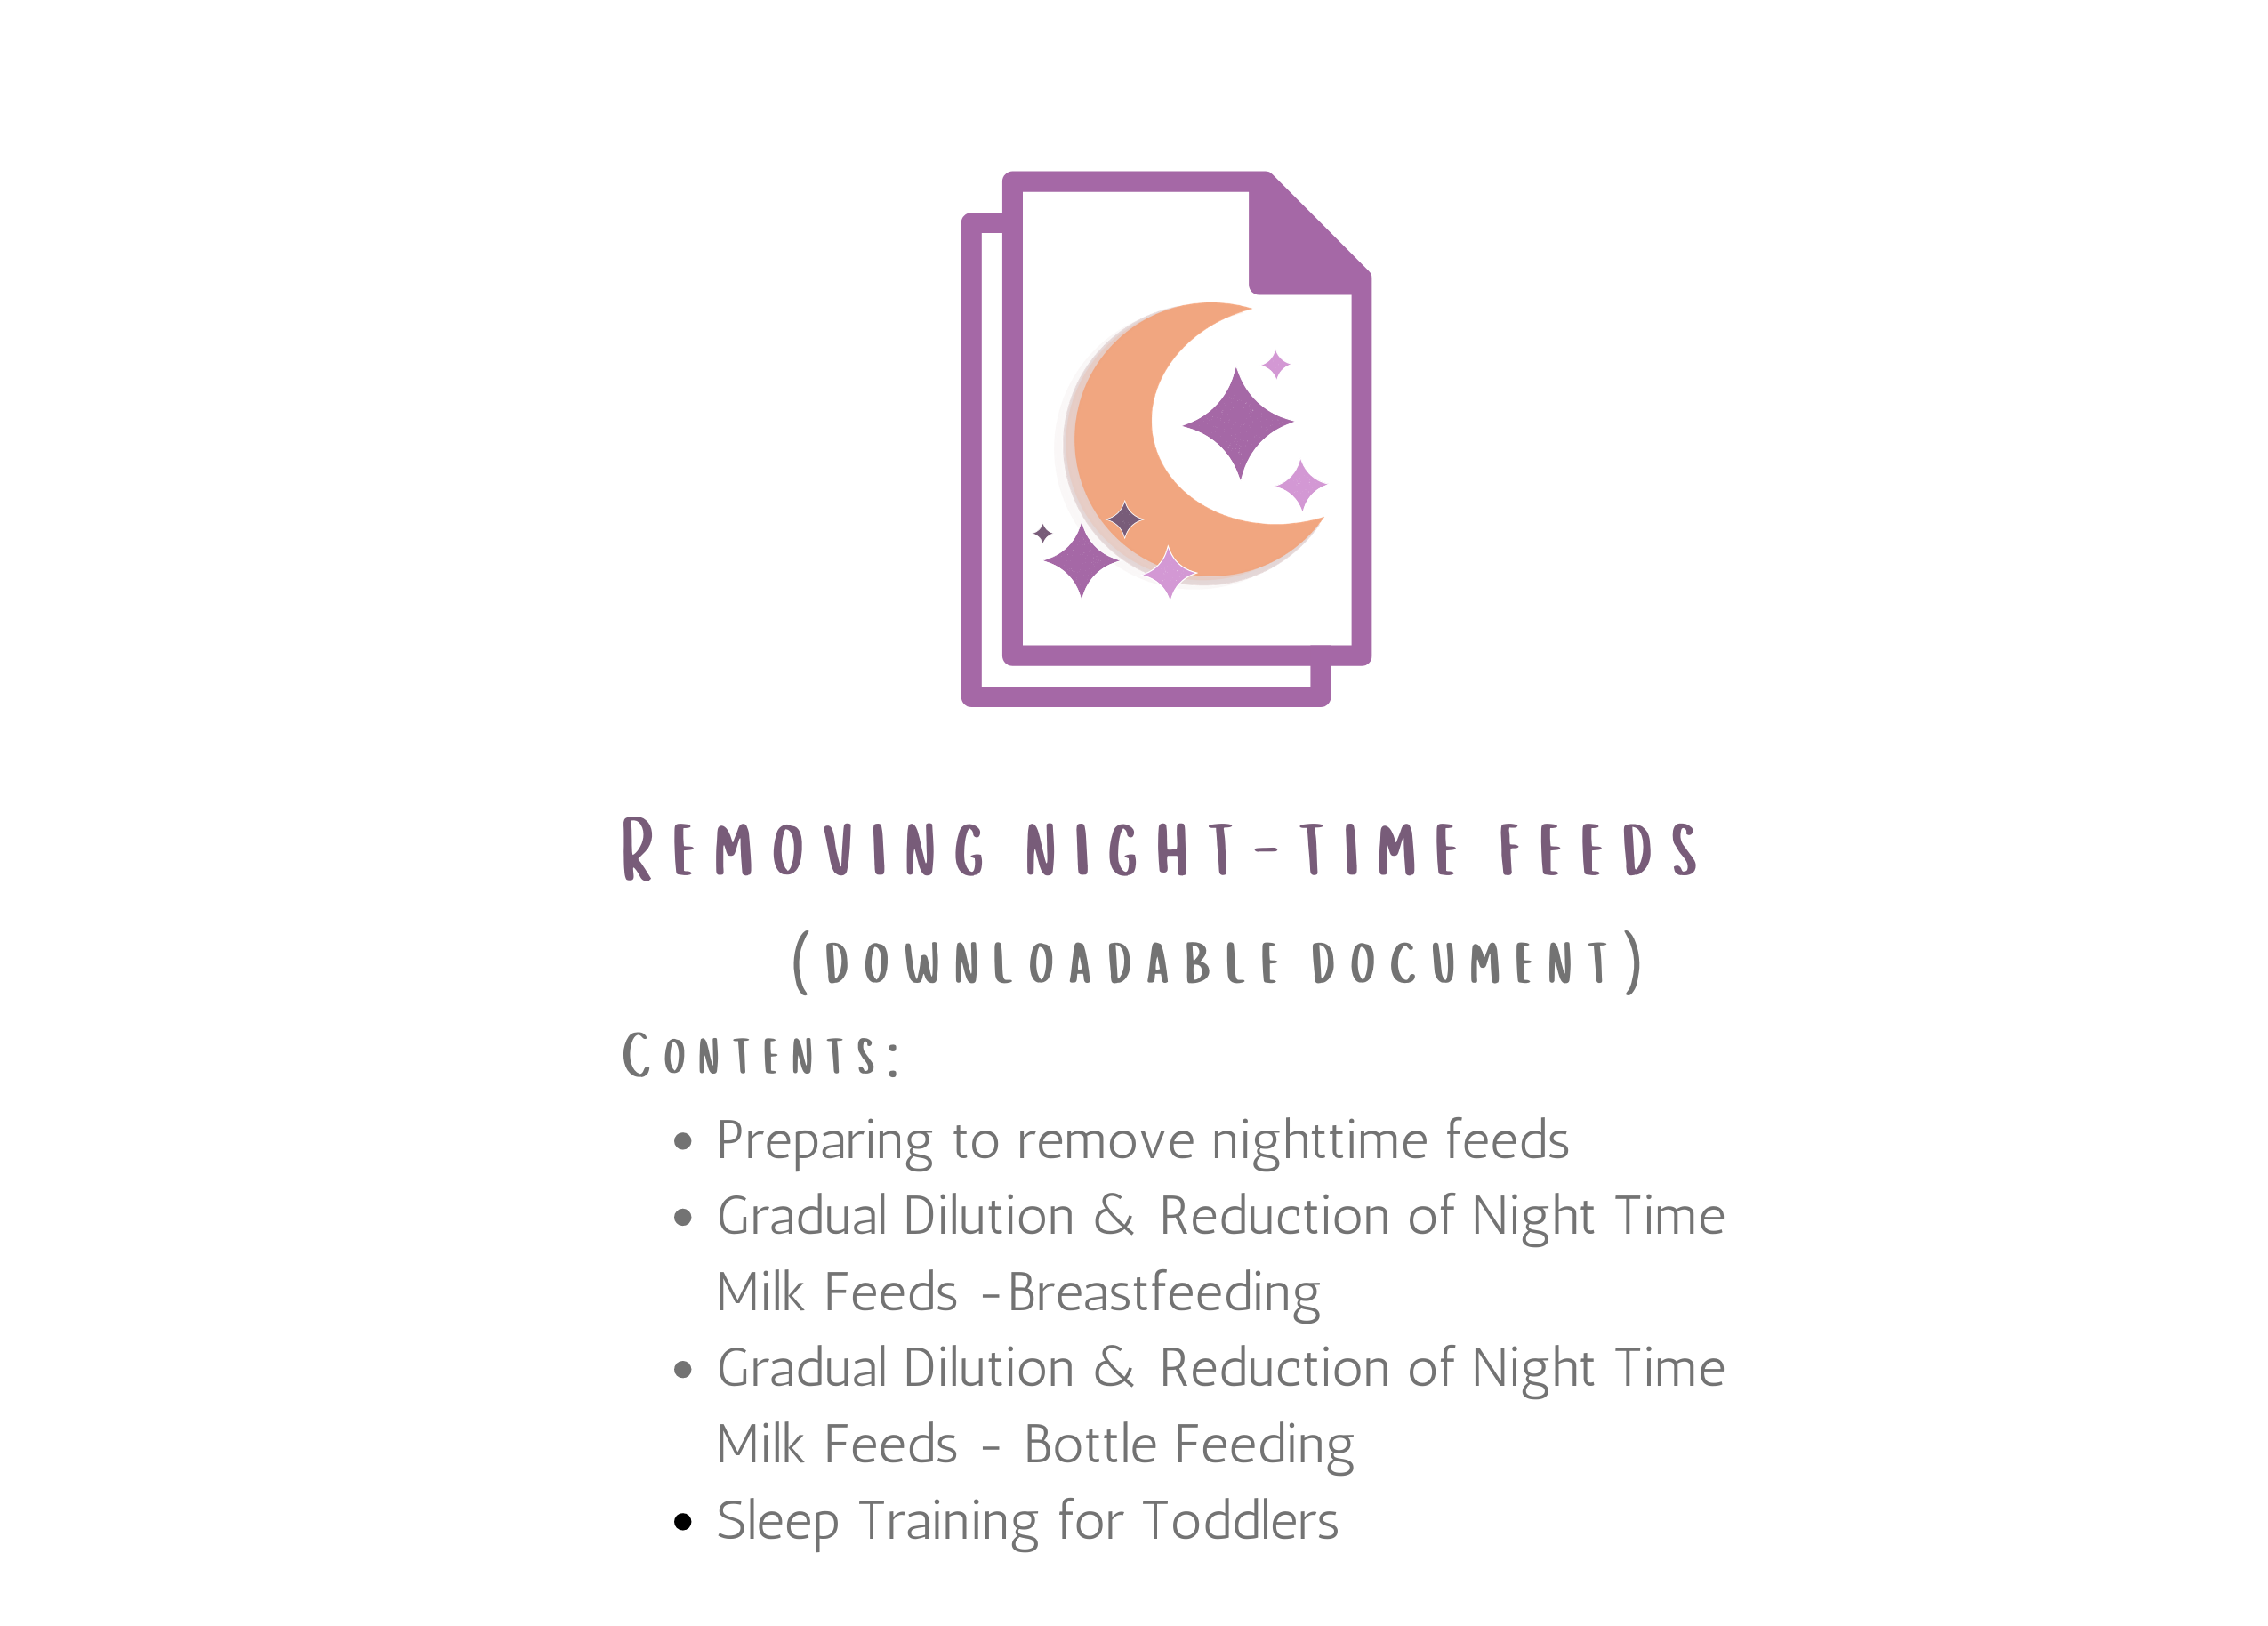 Removing Night Time Feeds For Babies Over 1 Year Old